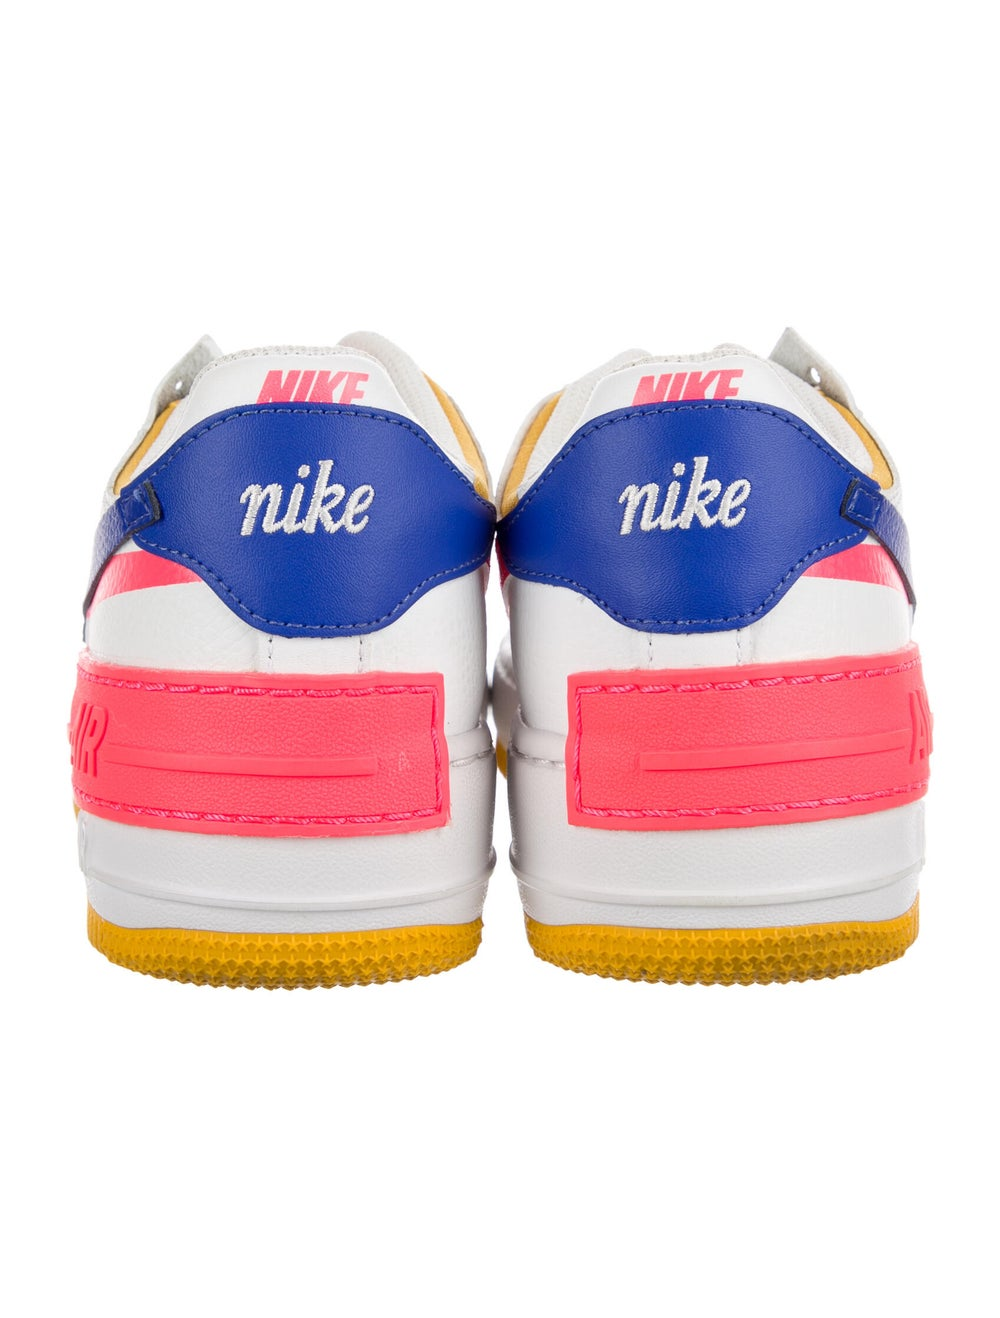 Nike Air Force 1 Sneakers White - image 4